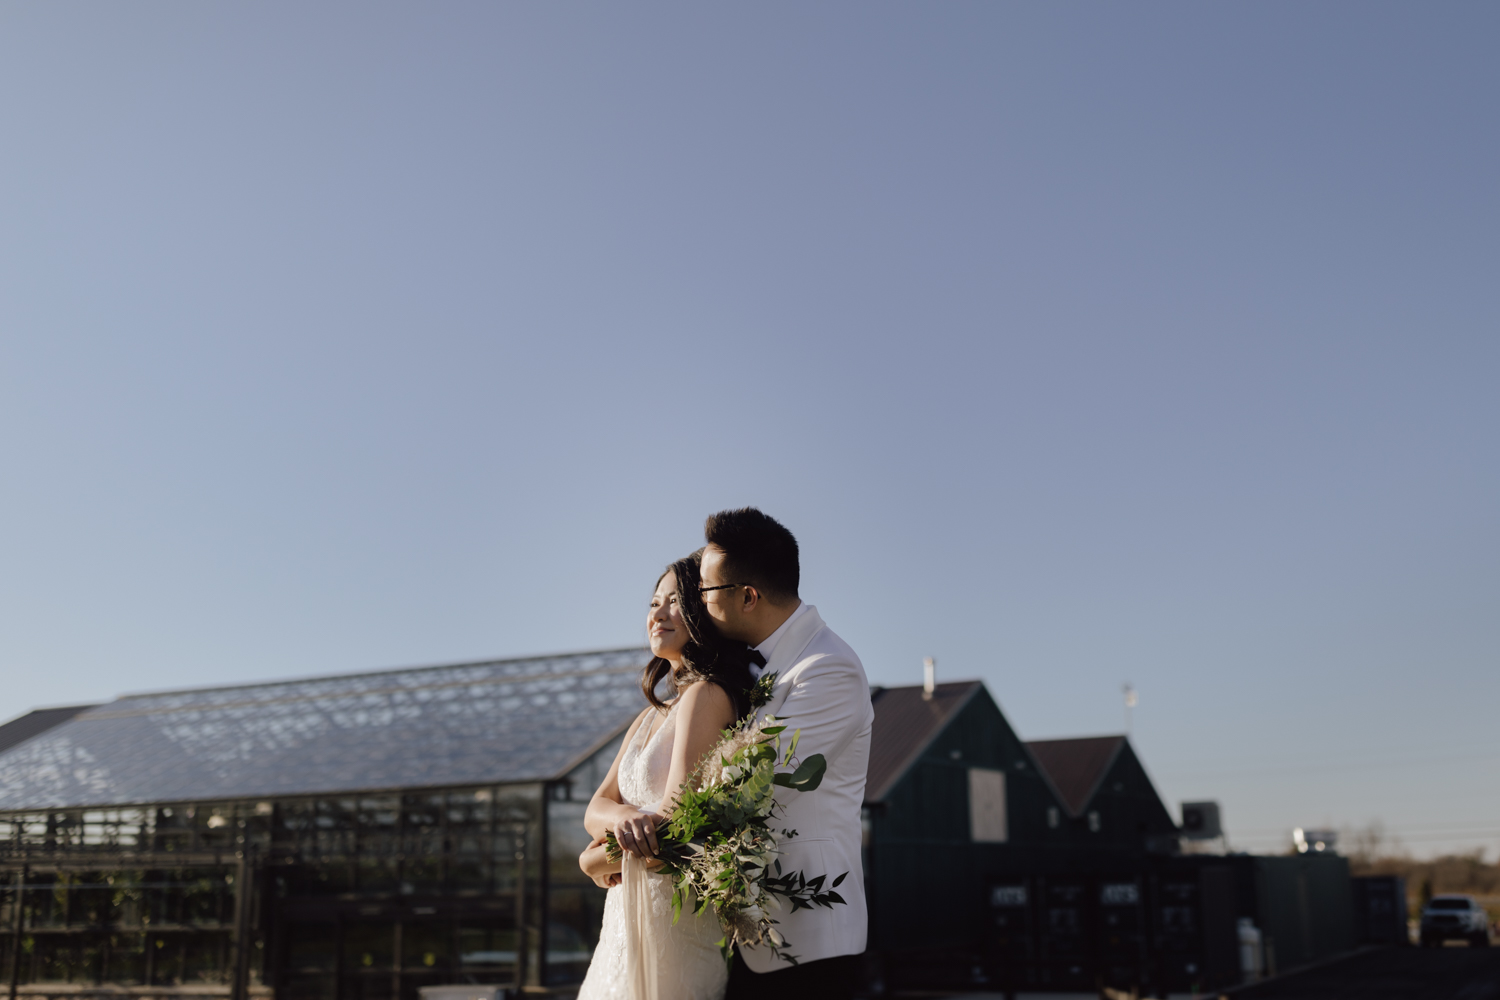 Ottawa greenhouse wedding